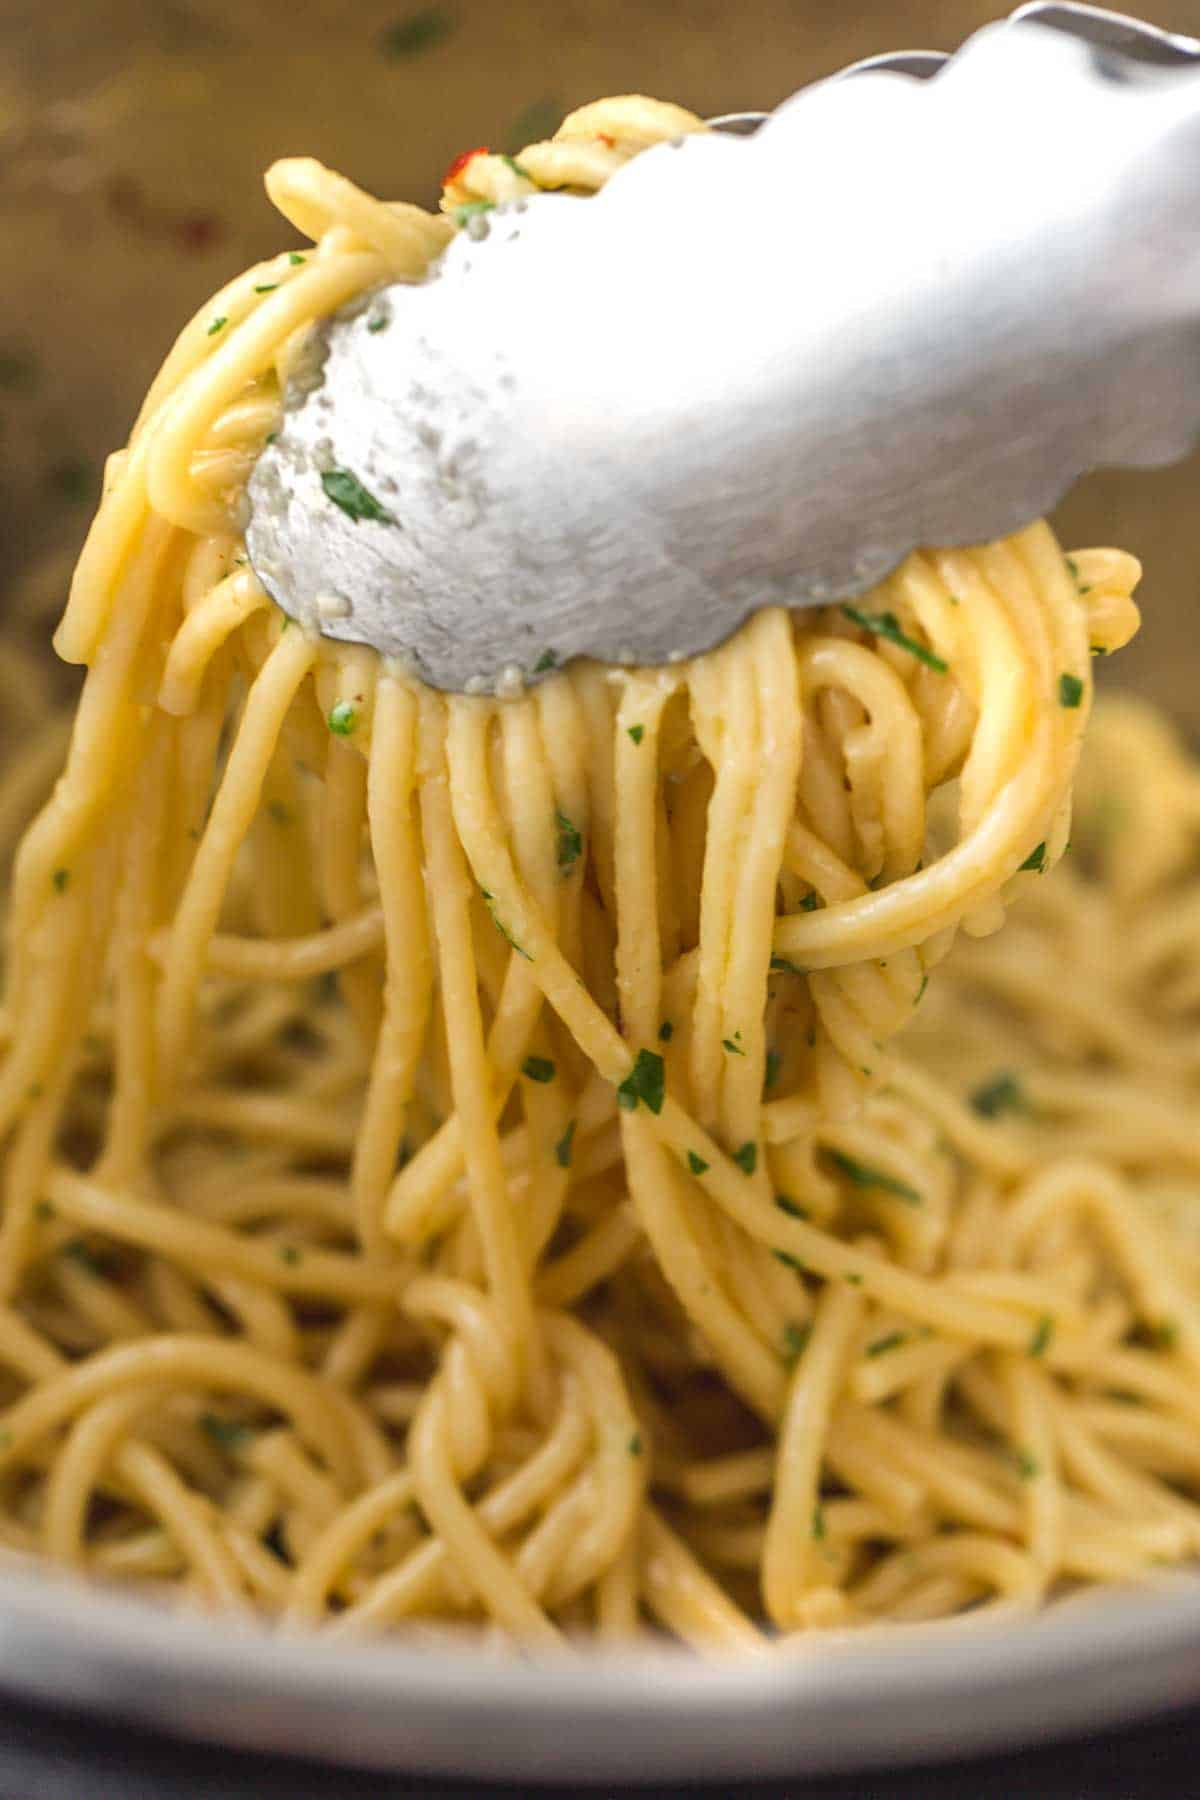 Serving the noodles using kitchen tongs